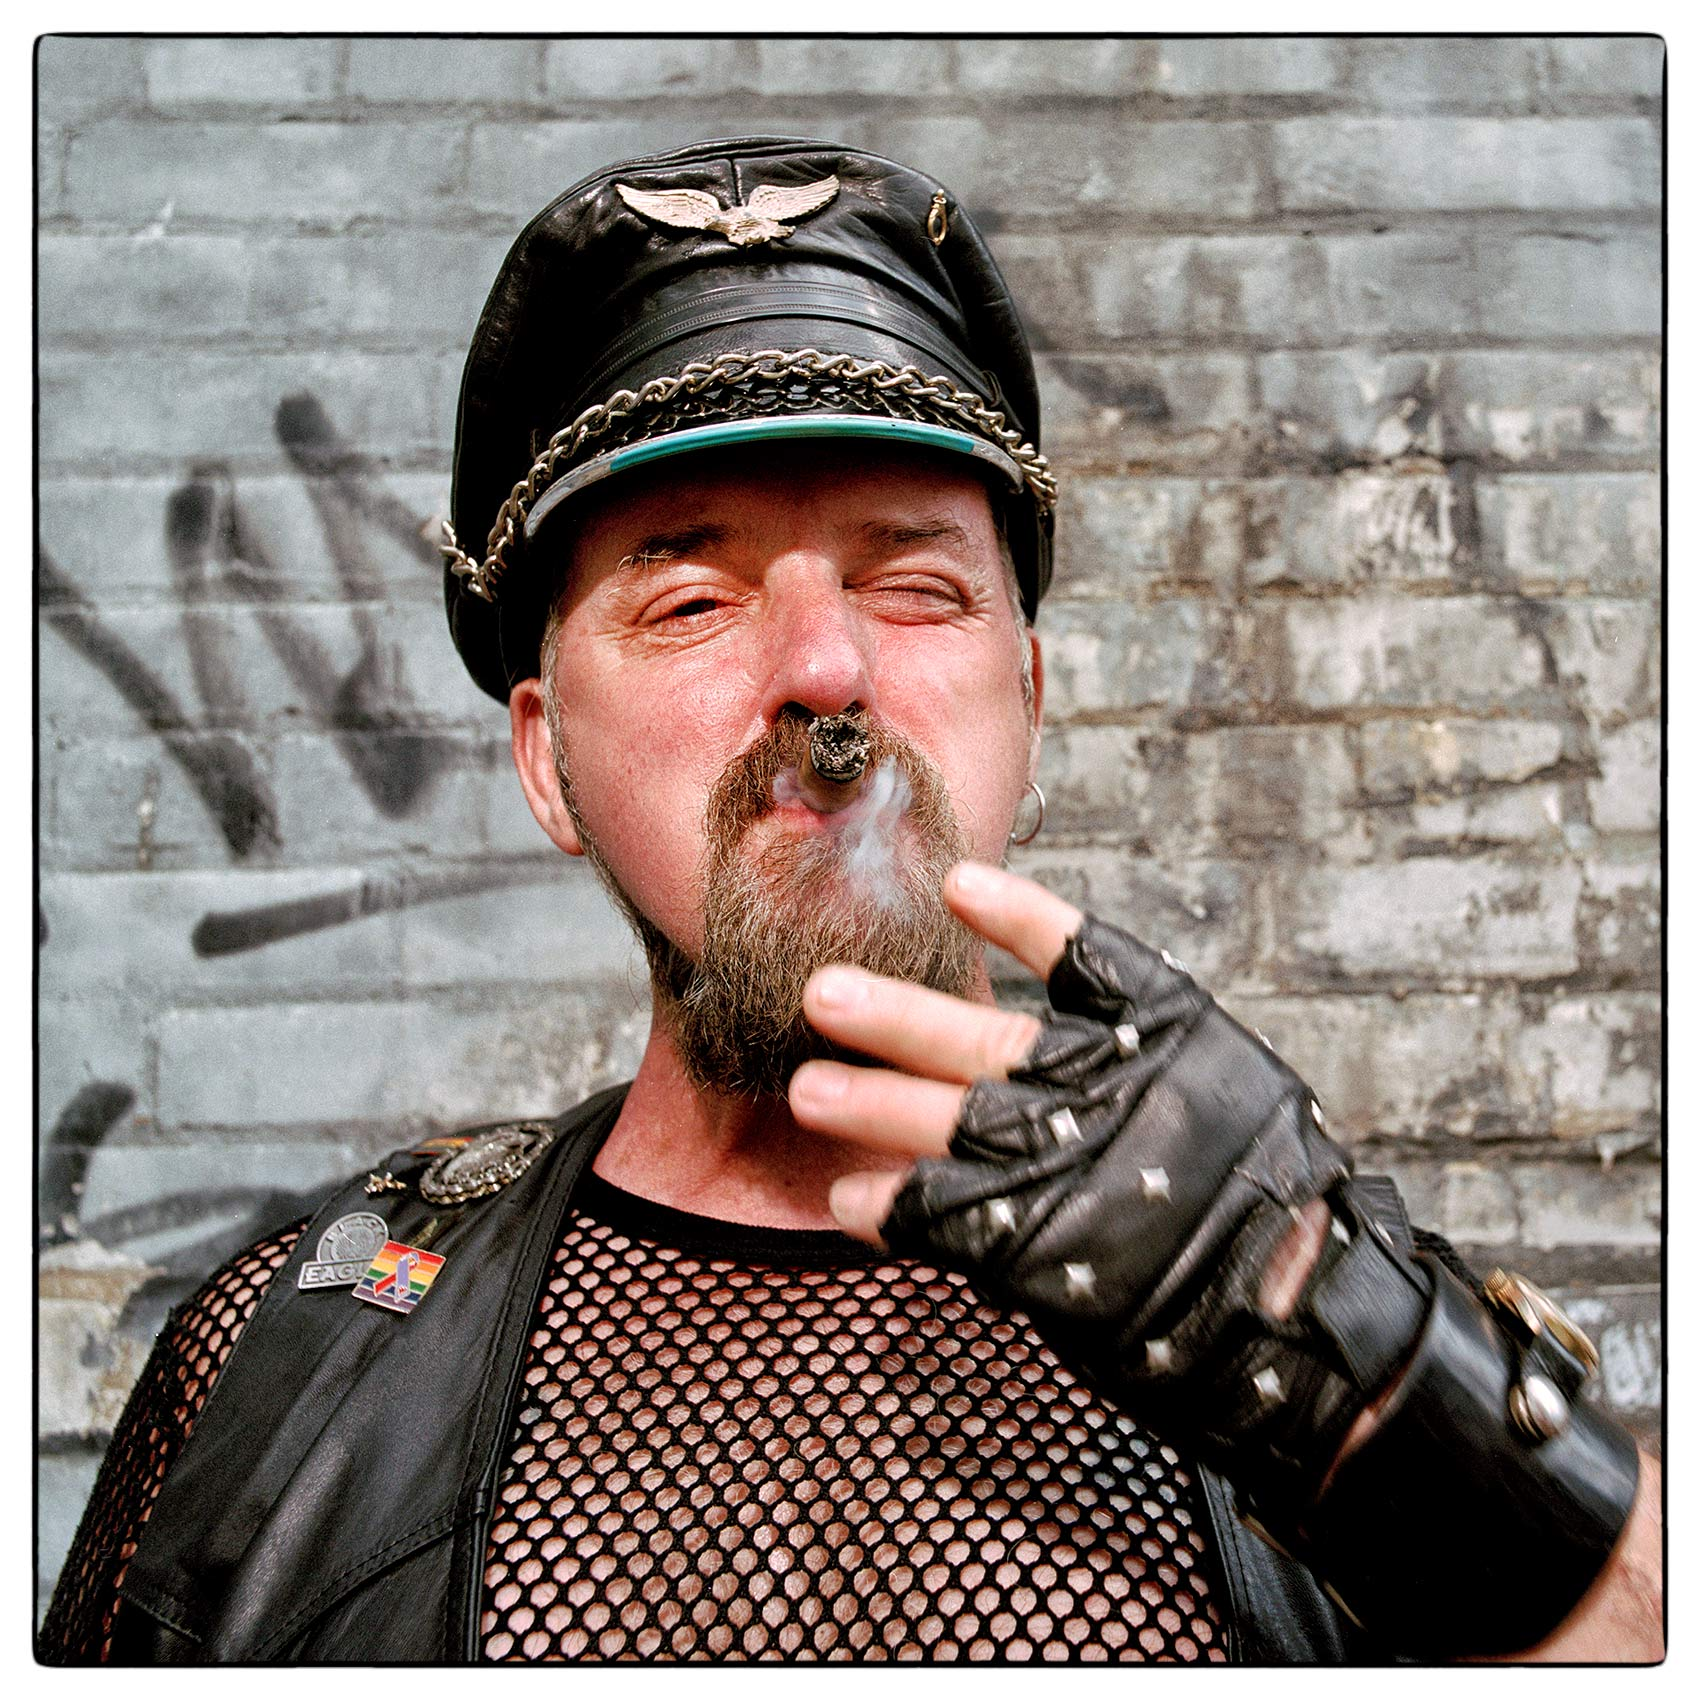 a-leather-daddy-smokes-a-large-cigar-while-posing-for-a-photo-at-toronto-gay-pride